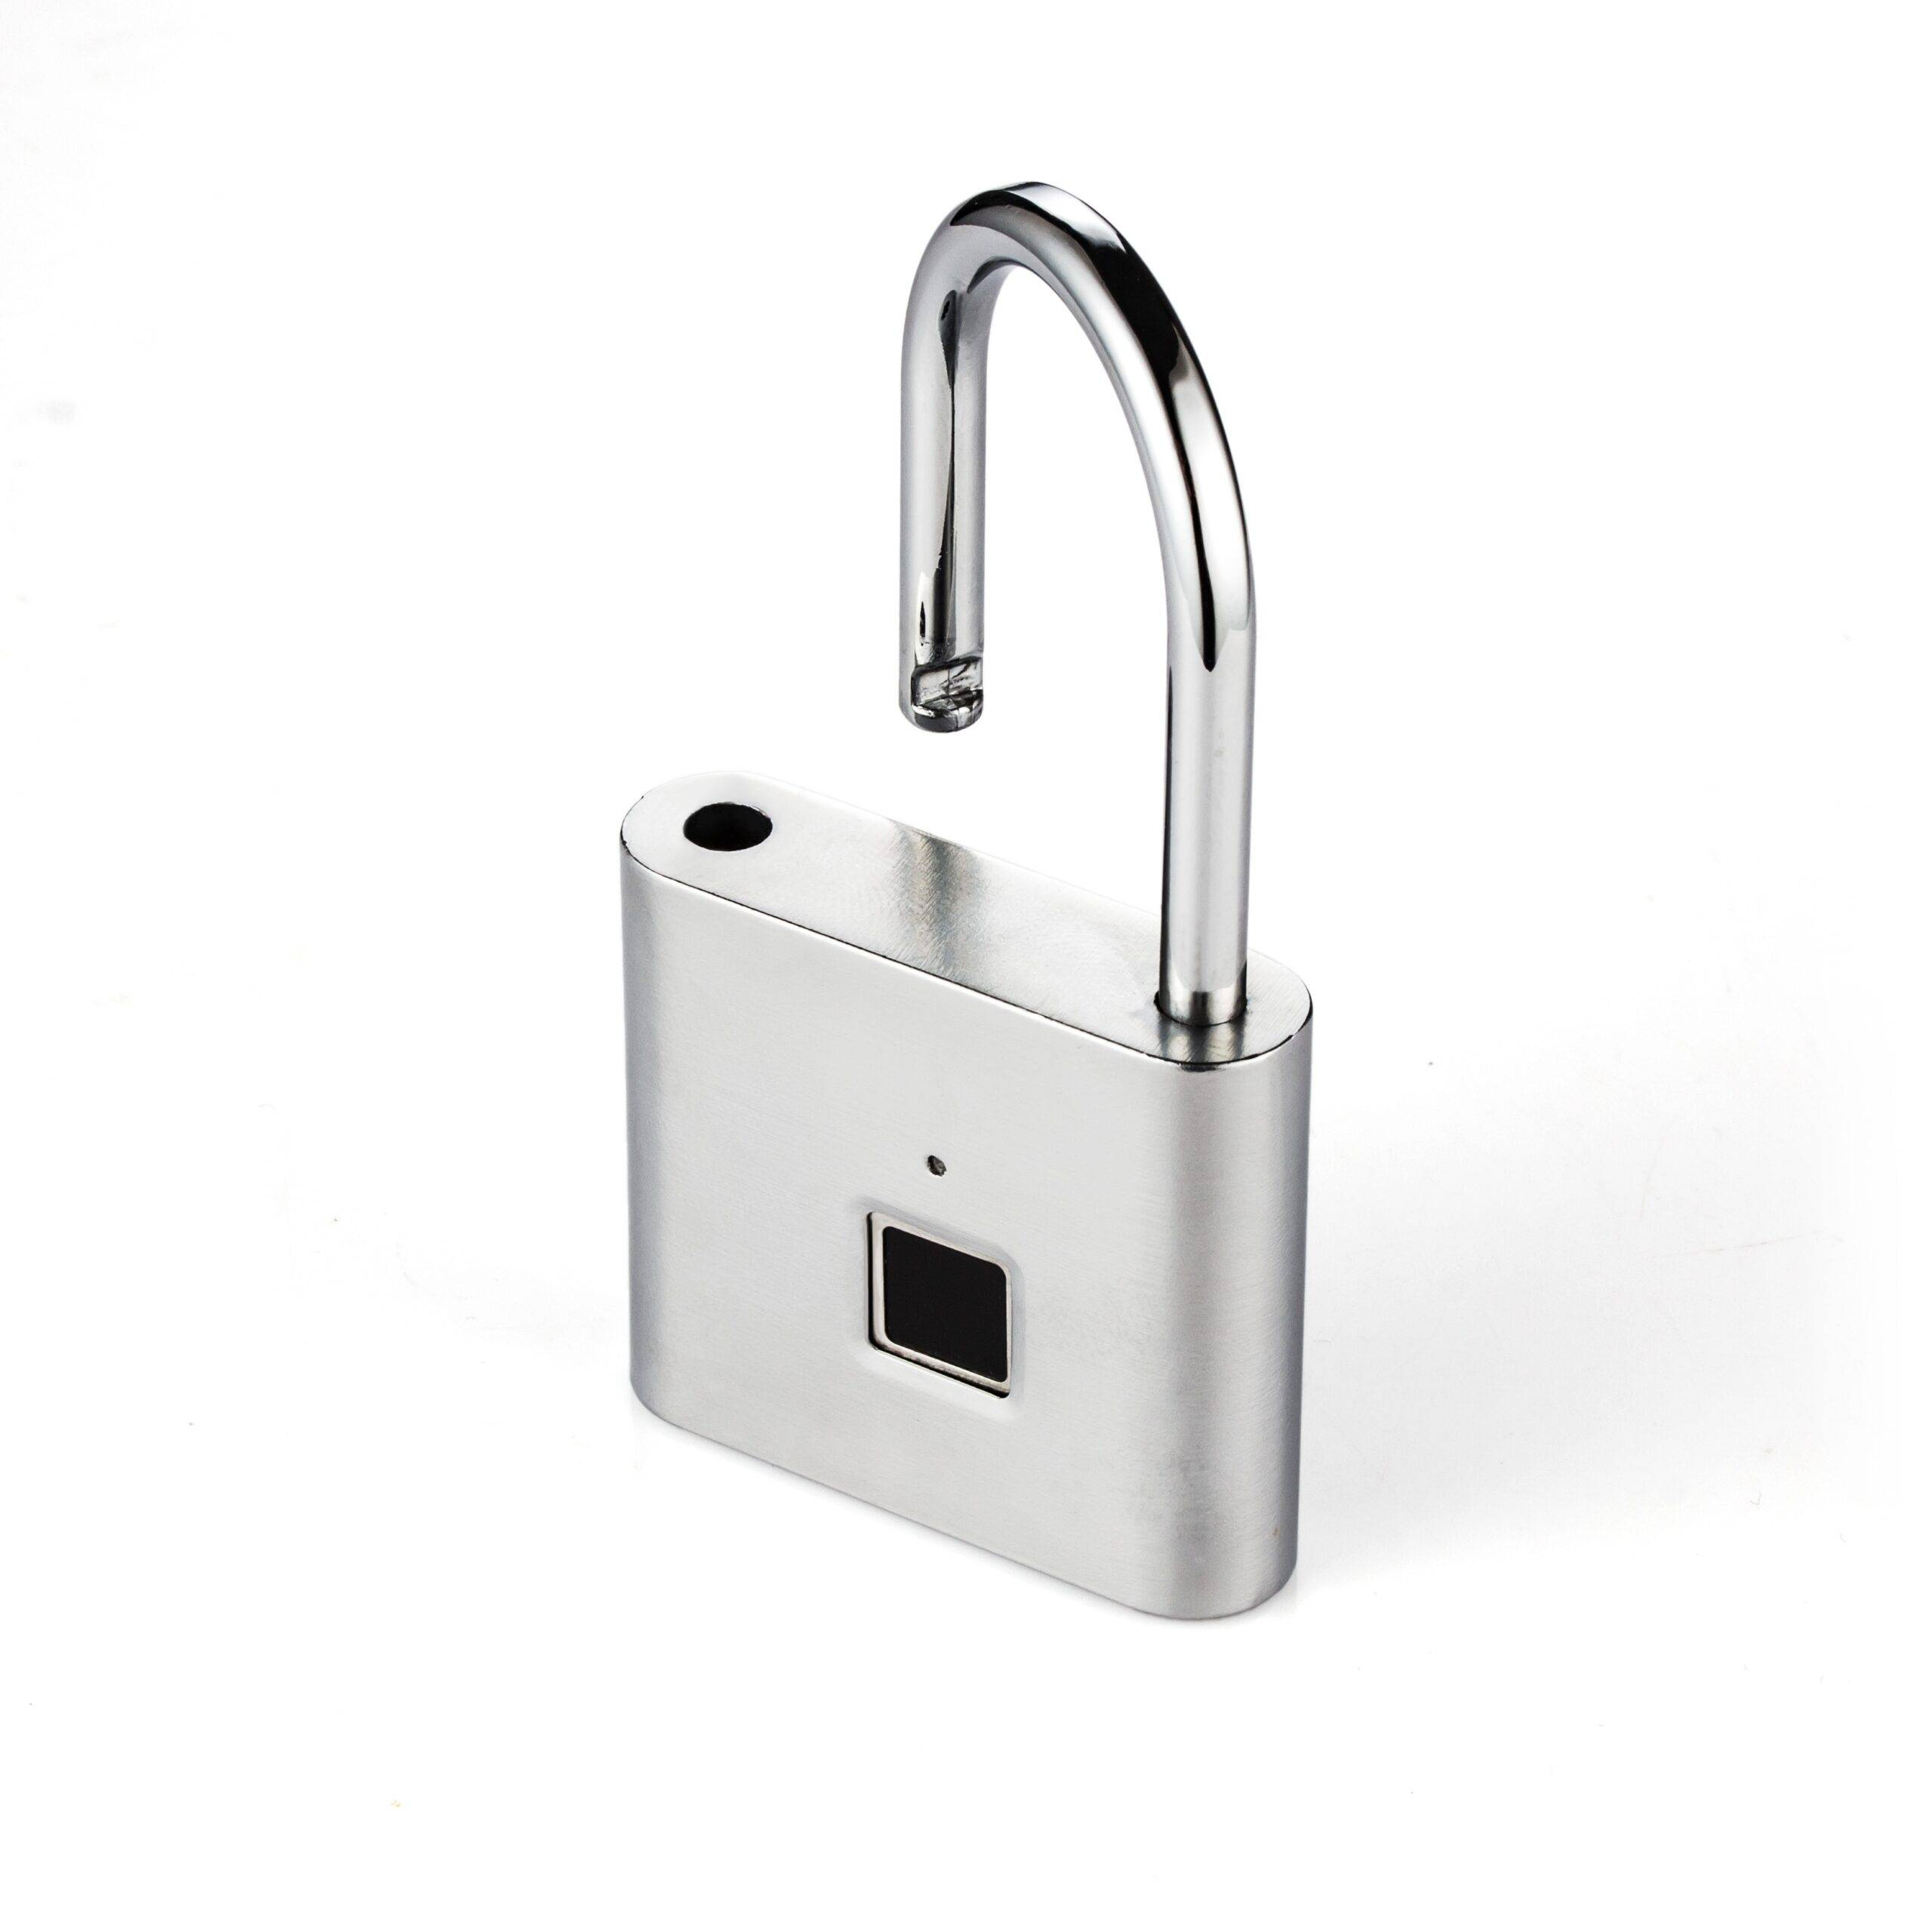 Compact Rechargeable Fingerprint Padlock Consumer Electronics Home Electronics Home Security Ships From : China|Russian Federation|Spain